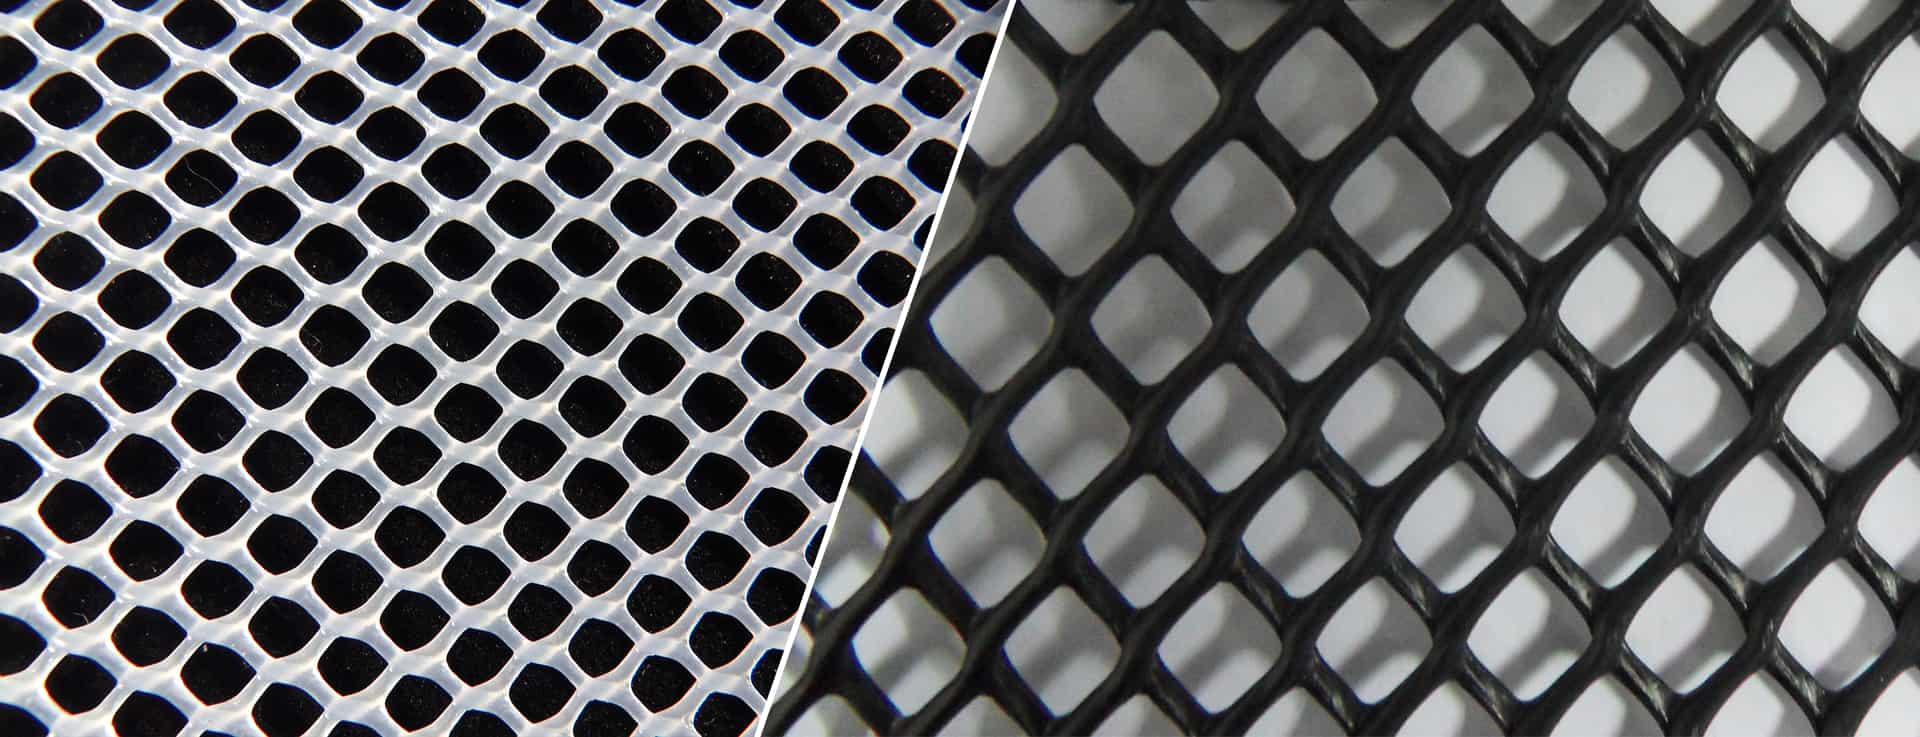 Professional  Plastic Netting Manufacturer